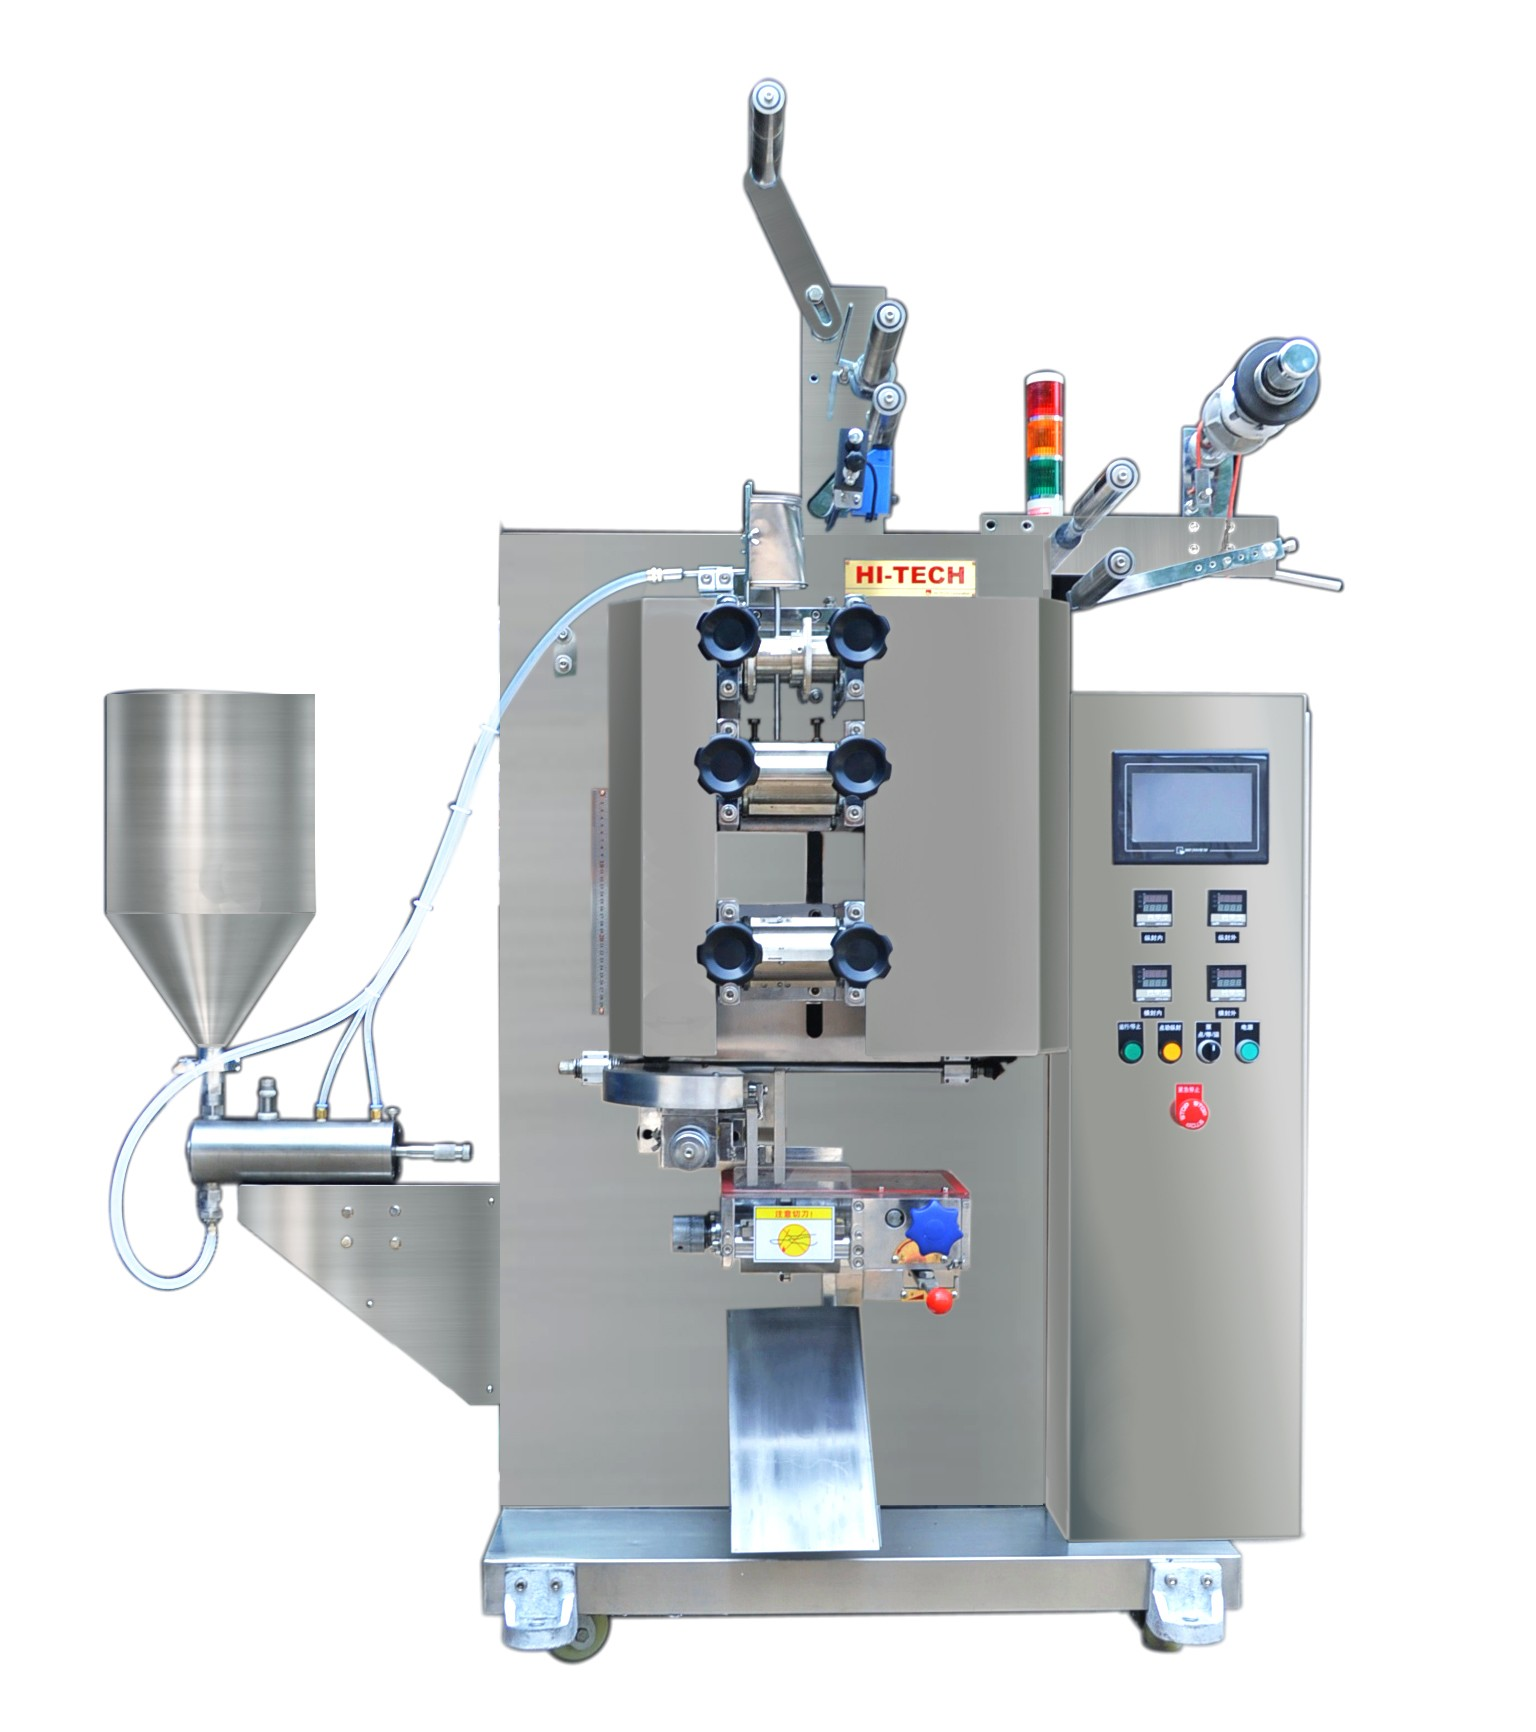 Automactic Sachet Liquid Packing And Filling Machine Manufacturers, Automactic Sachet Liquid Packing And Filling Machine Factory, Supply Automactic Sachet Liquid Packing And Filling Machine